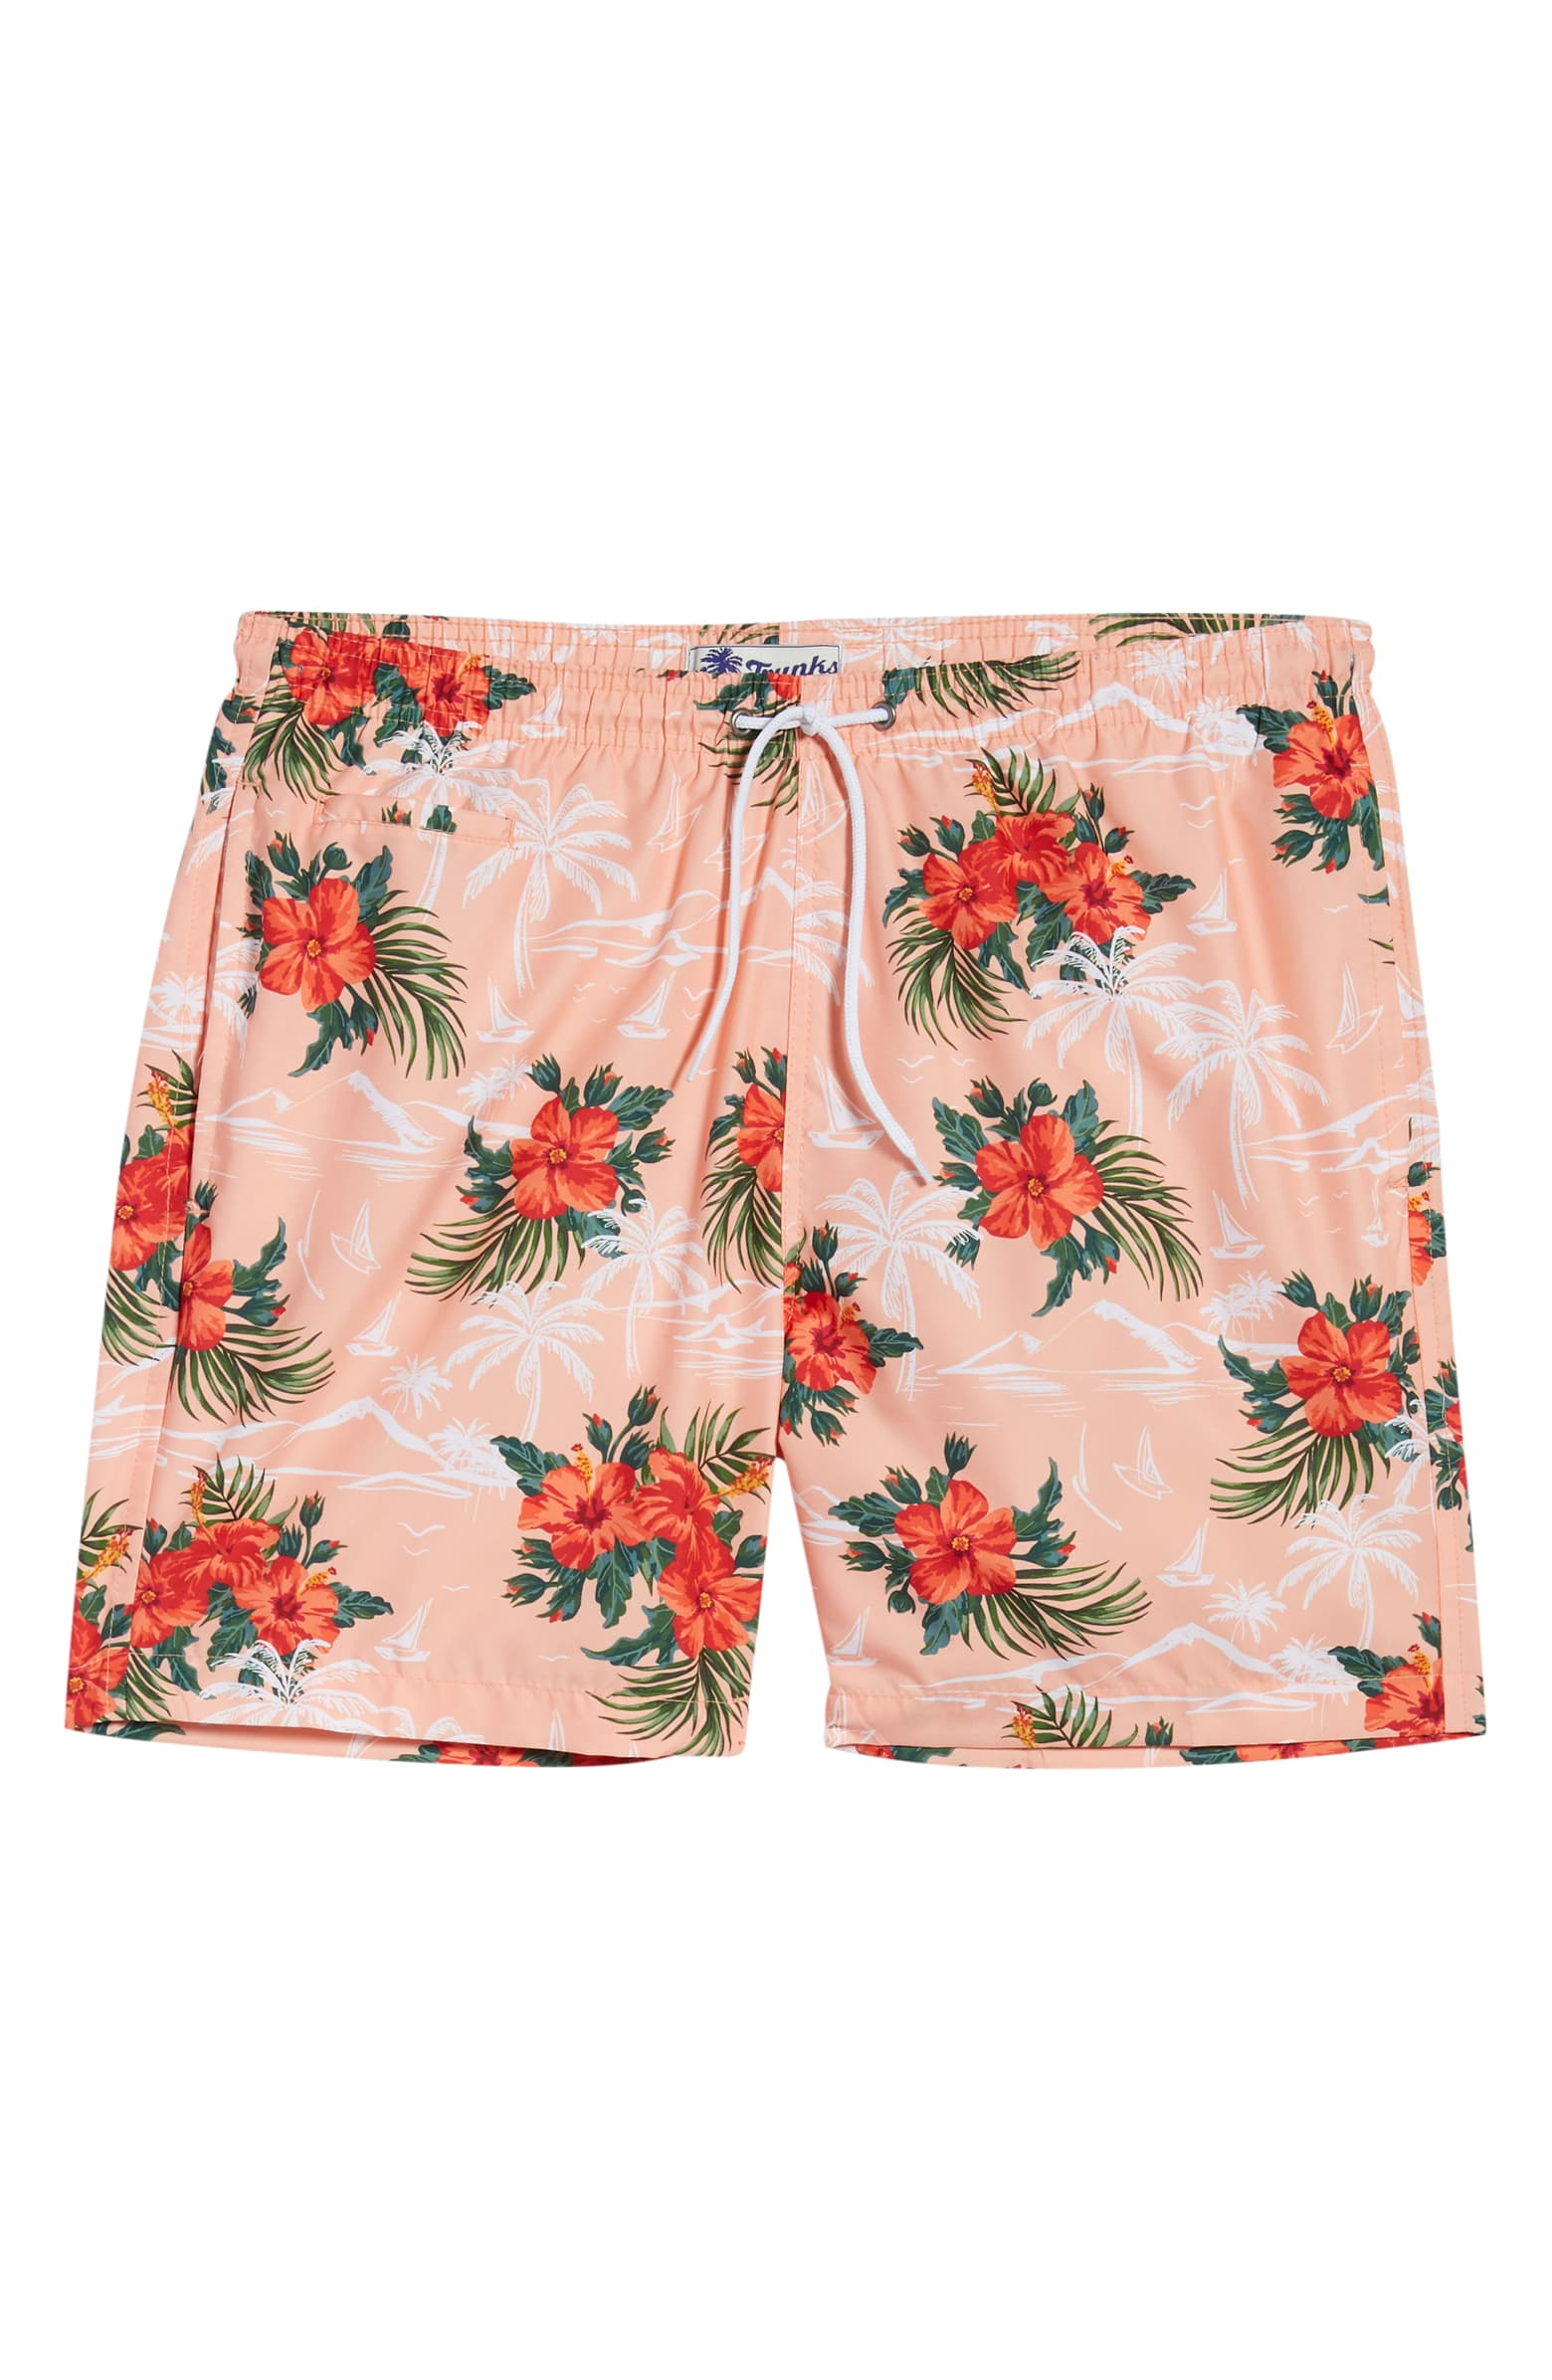 Trunks Surf & Swim Co. - Sano Tropical Print Swim Trunks / $54.00Doesn't quite feel like summer to you without a tropical print? Go for this fun (without being gaudy) trunk!